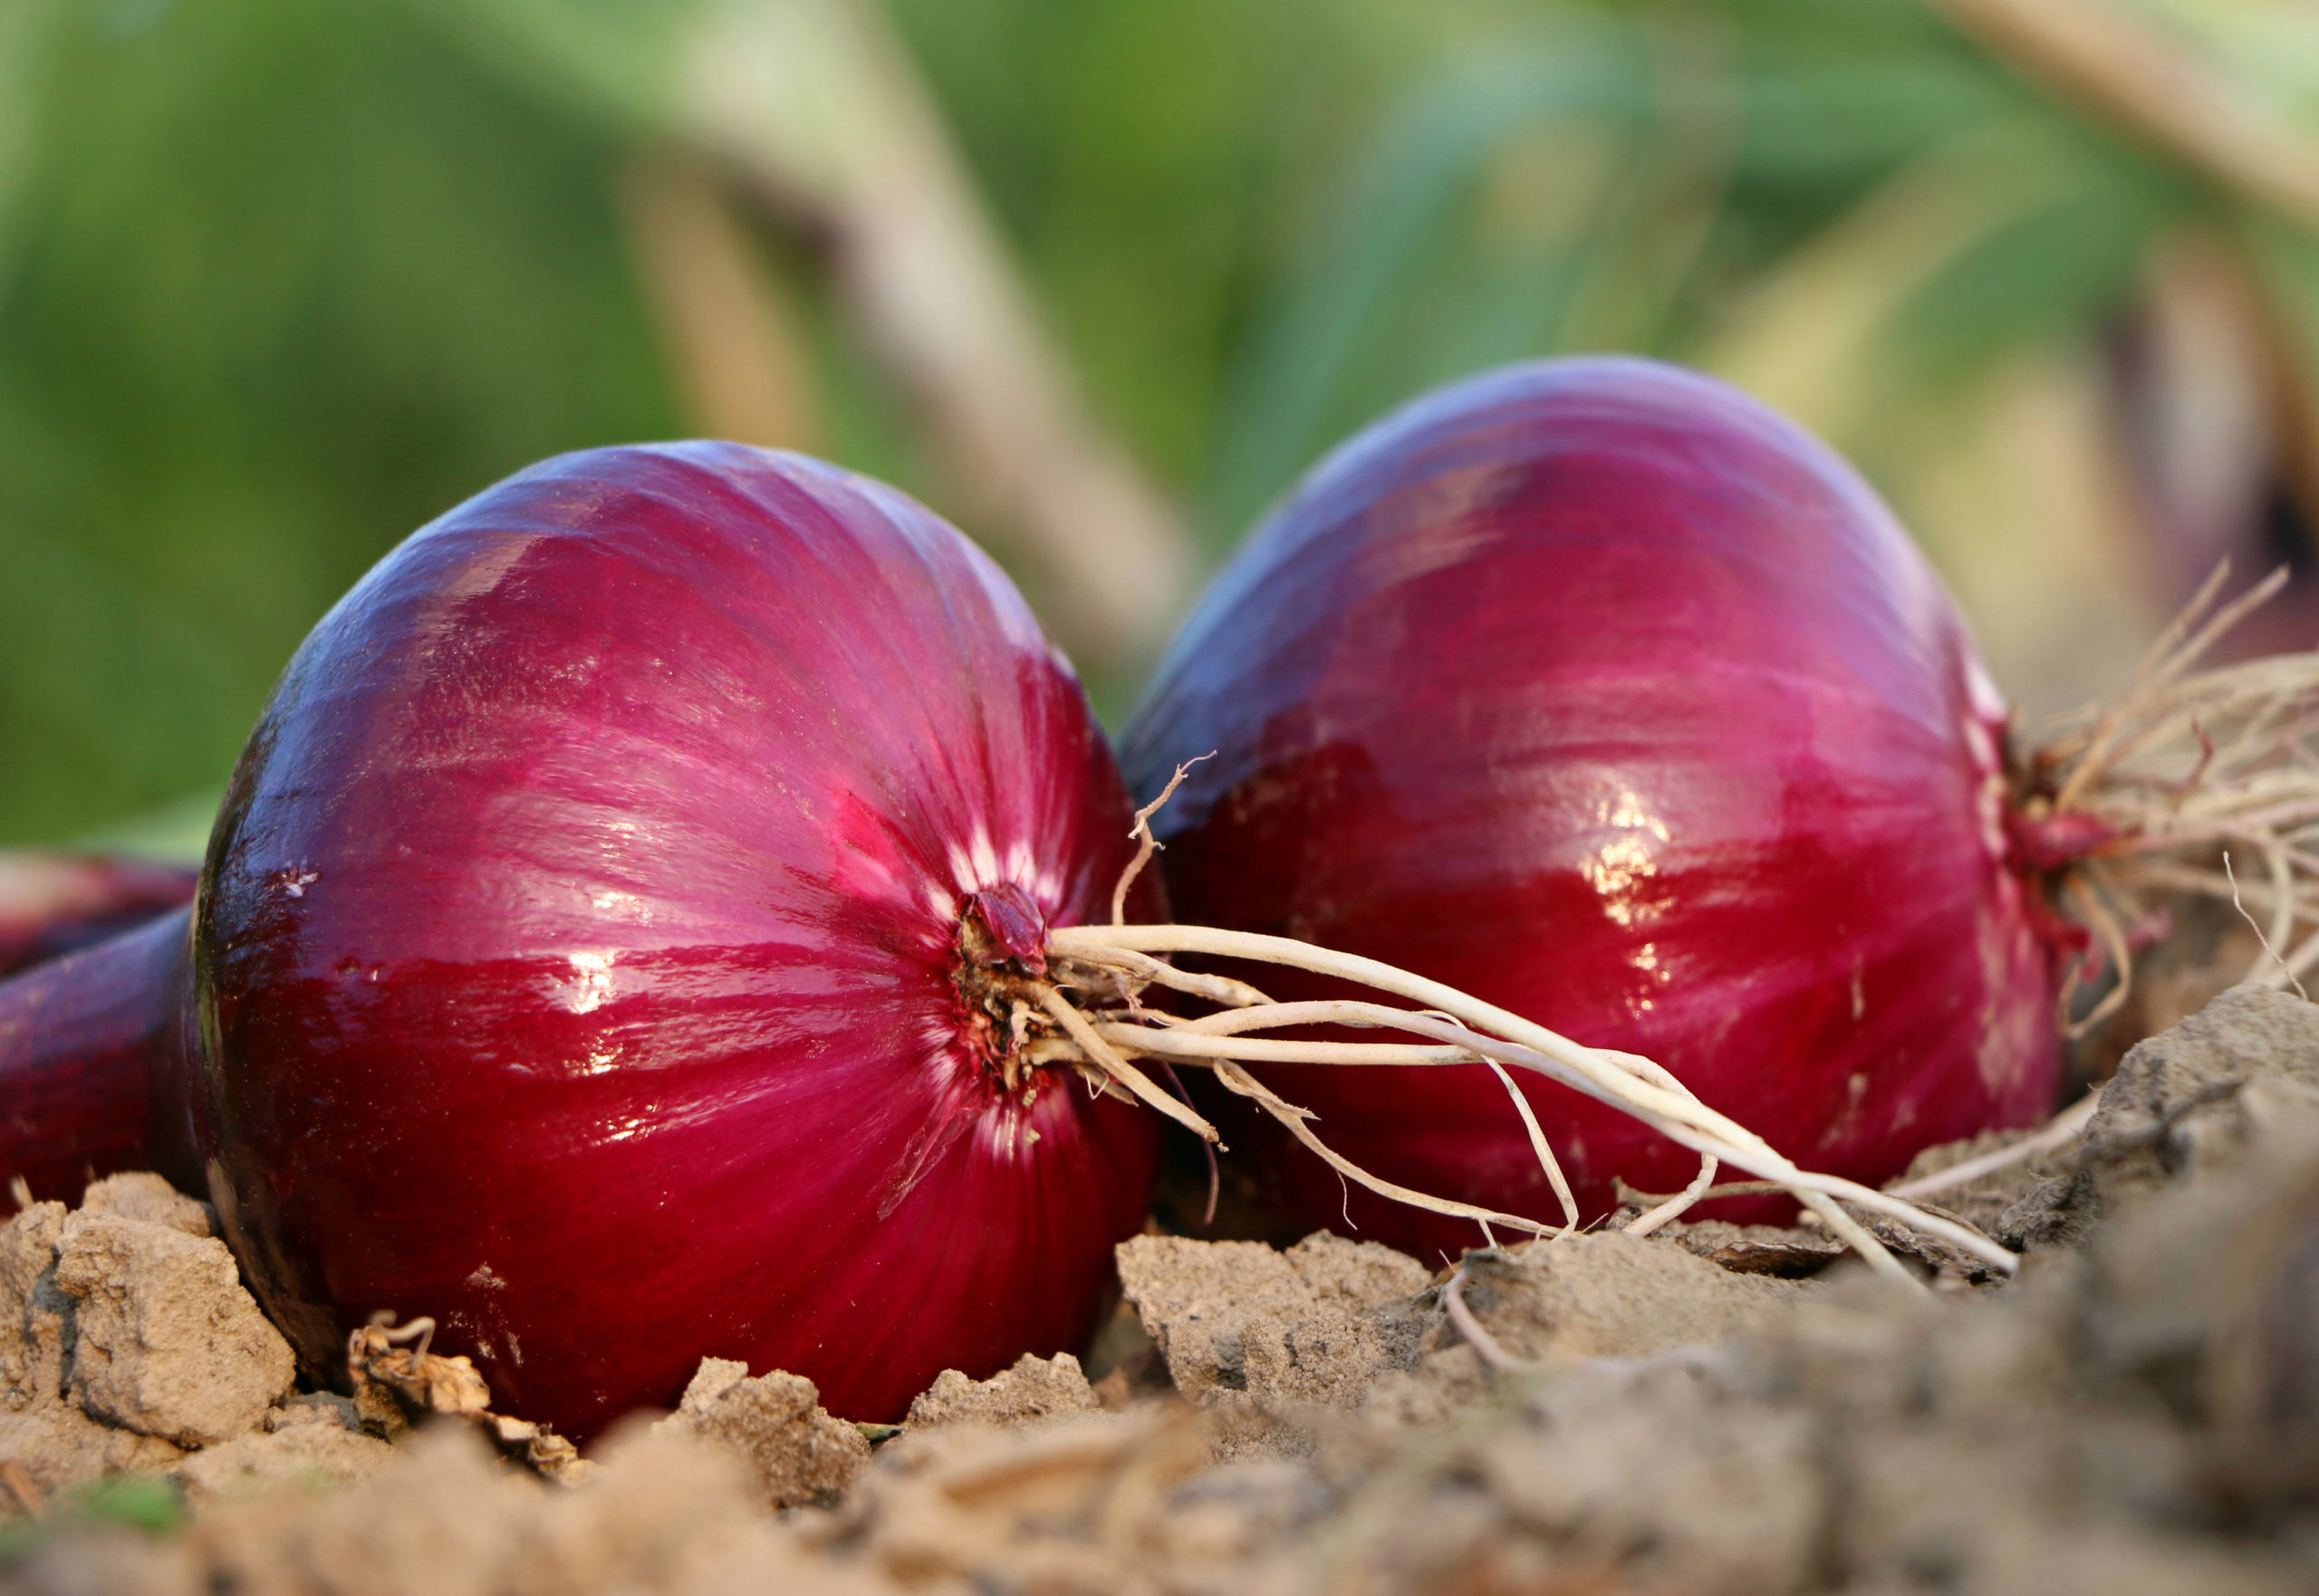 Red onions linked to nationwide salmonella outbreak